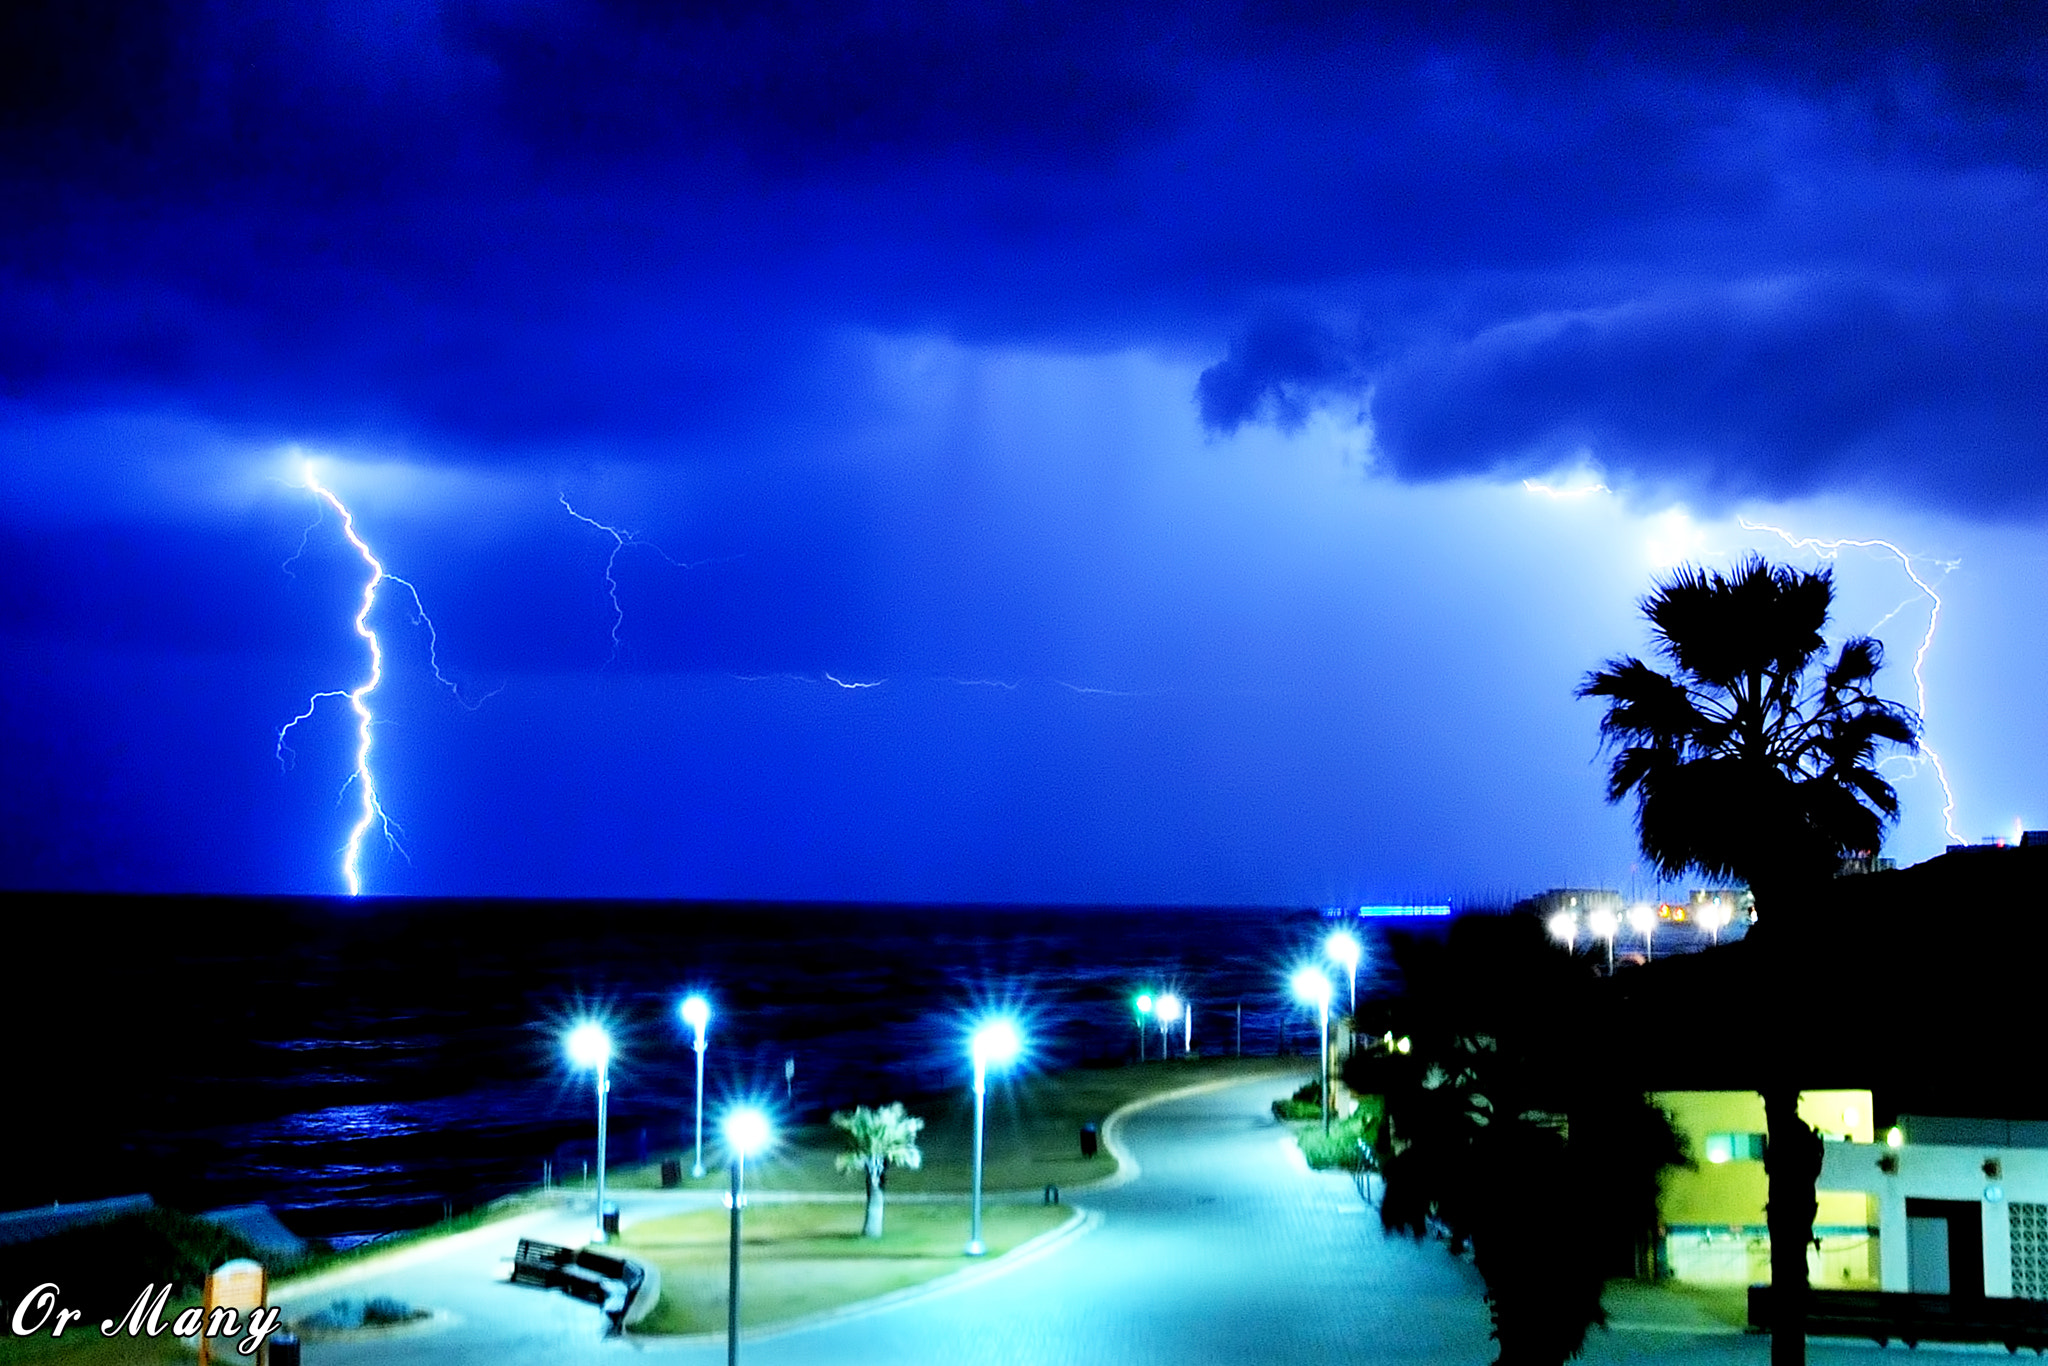 Photograph Lightning Storm - Tel Aviv - Israel by Or Many on 500px